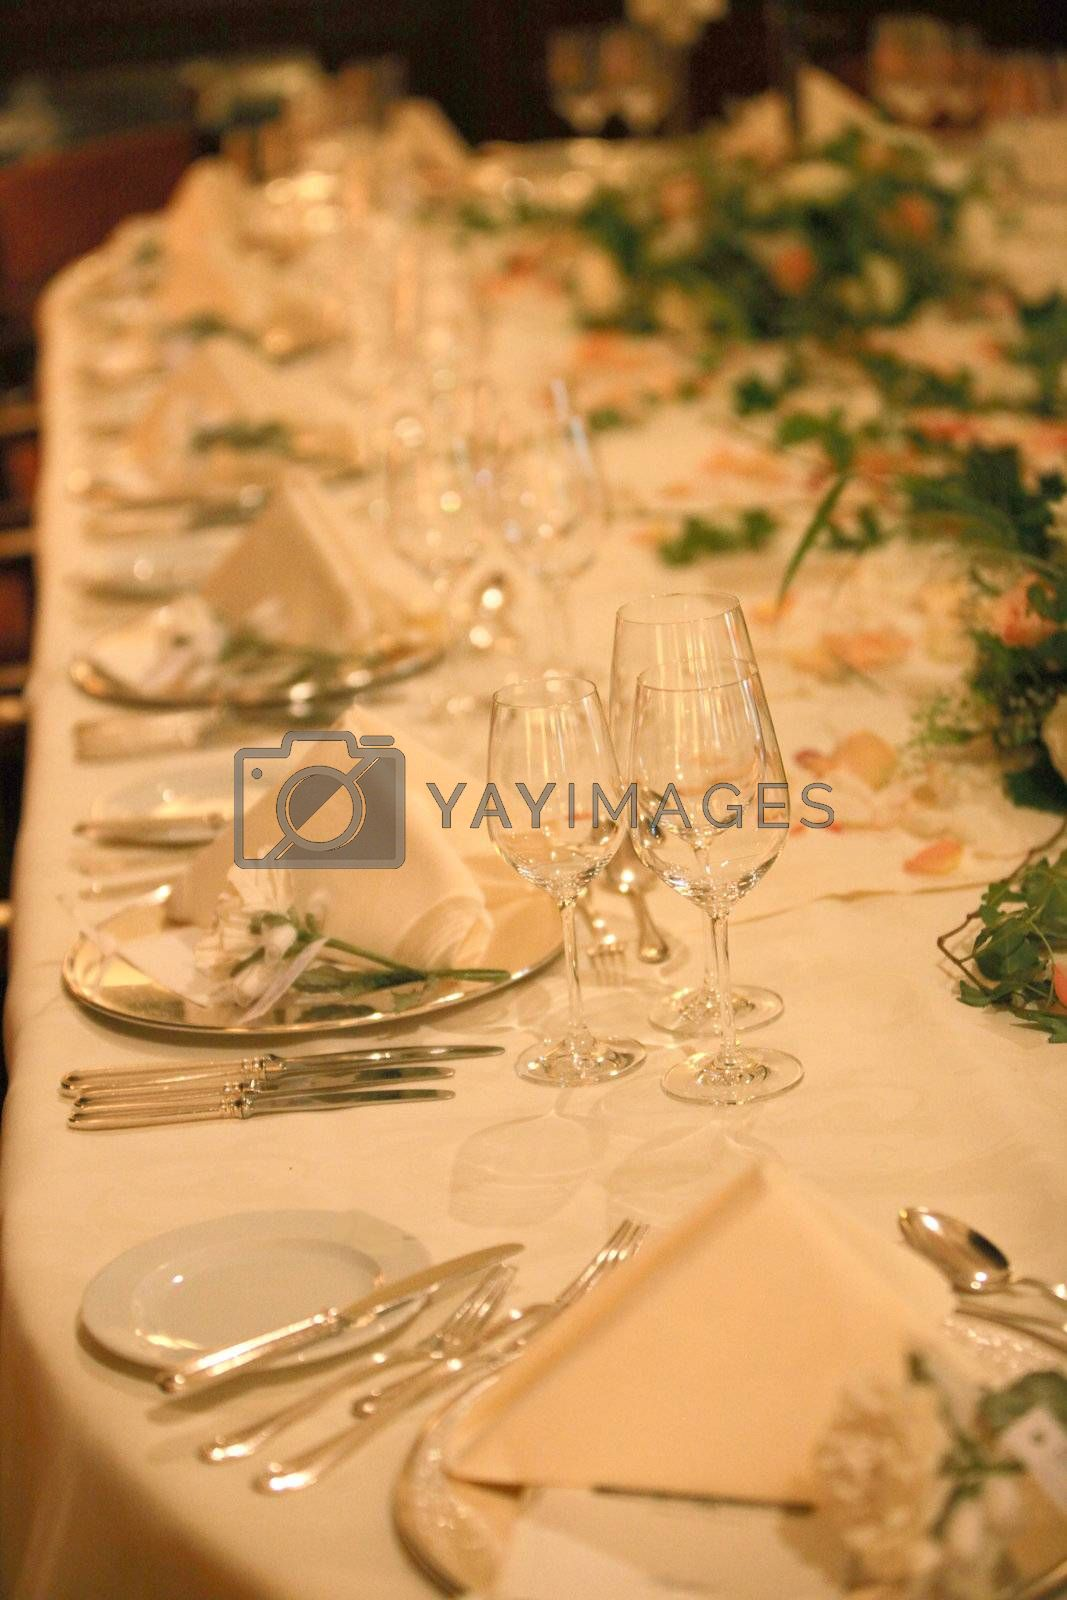 Royalty free image of table decoration by Farina6000